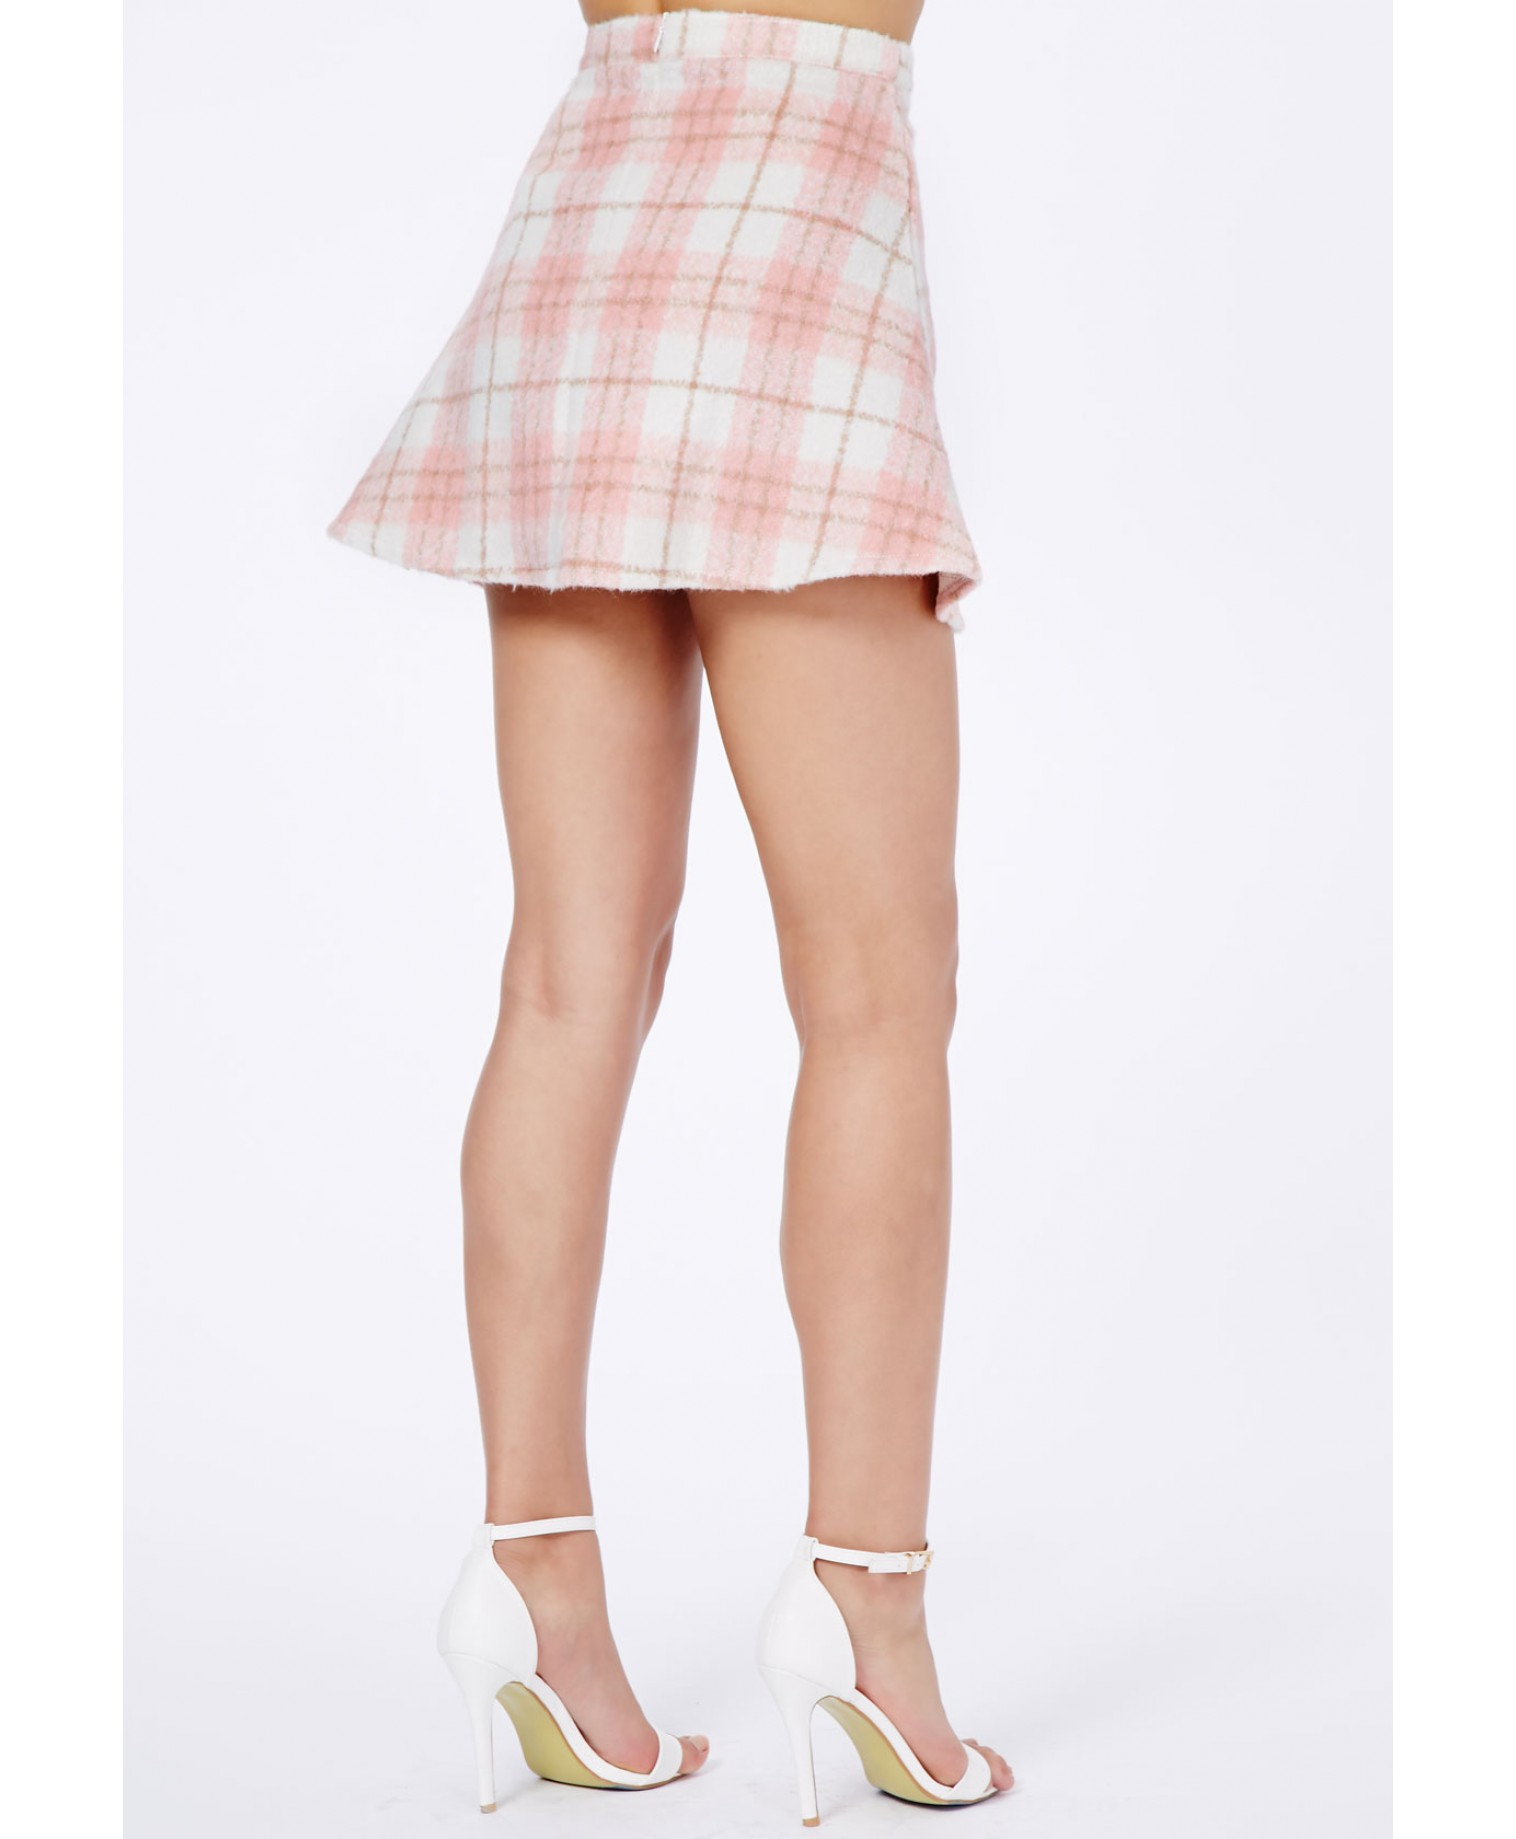 Missguided Marlee Tartan A-Line Skirt In Baby Pink in Pink | Lyst